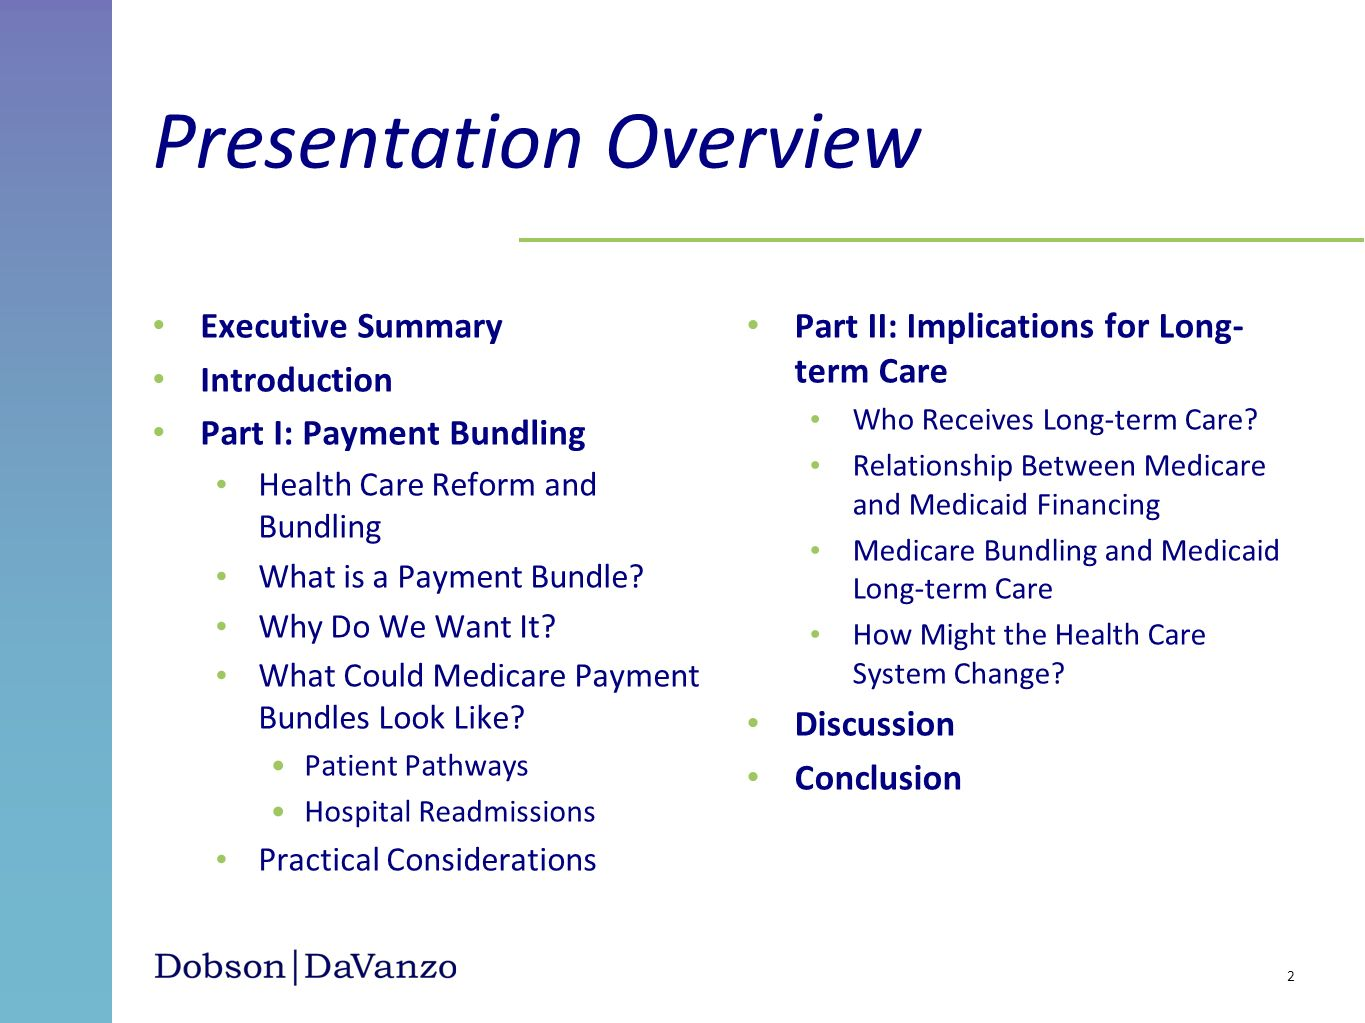 Presentation Overview Executive Summary Introduction Part I: Payment Bundling Health Care Reform and Bundling What is a Payment Bundle? Why Do We Want